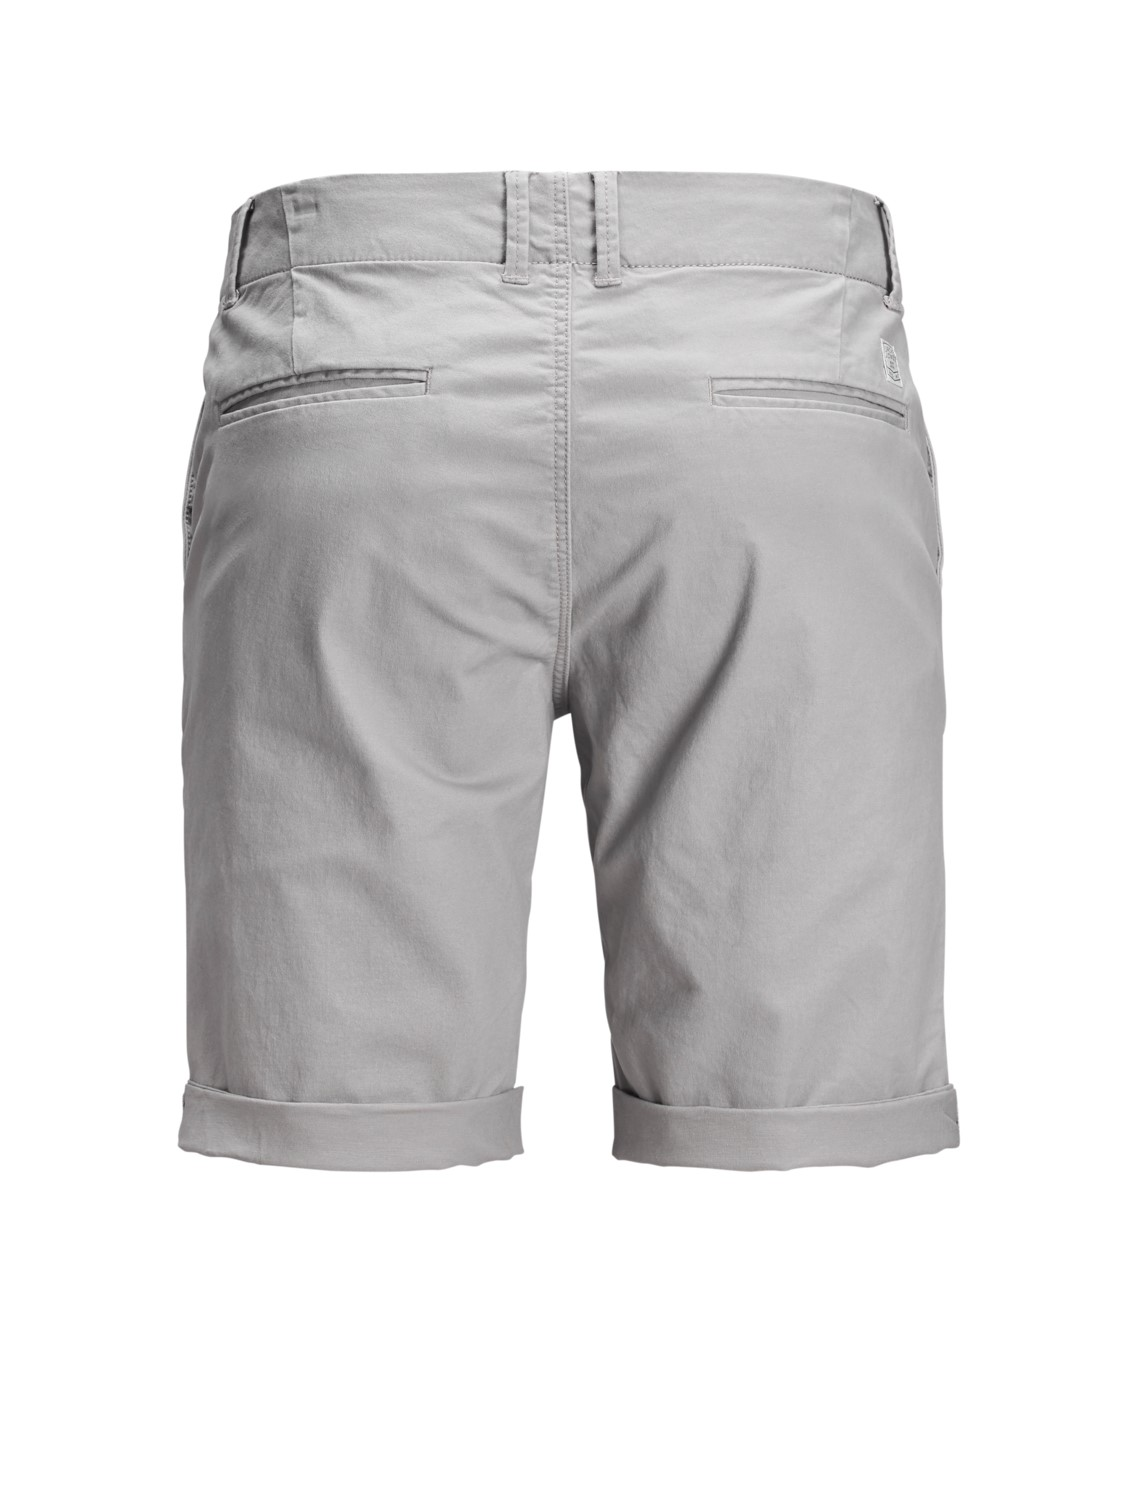 Jack-amp-Jones-Mens-039-JJIENZO-039-Chino-Shorts thumbnail 8